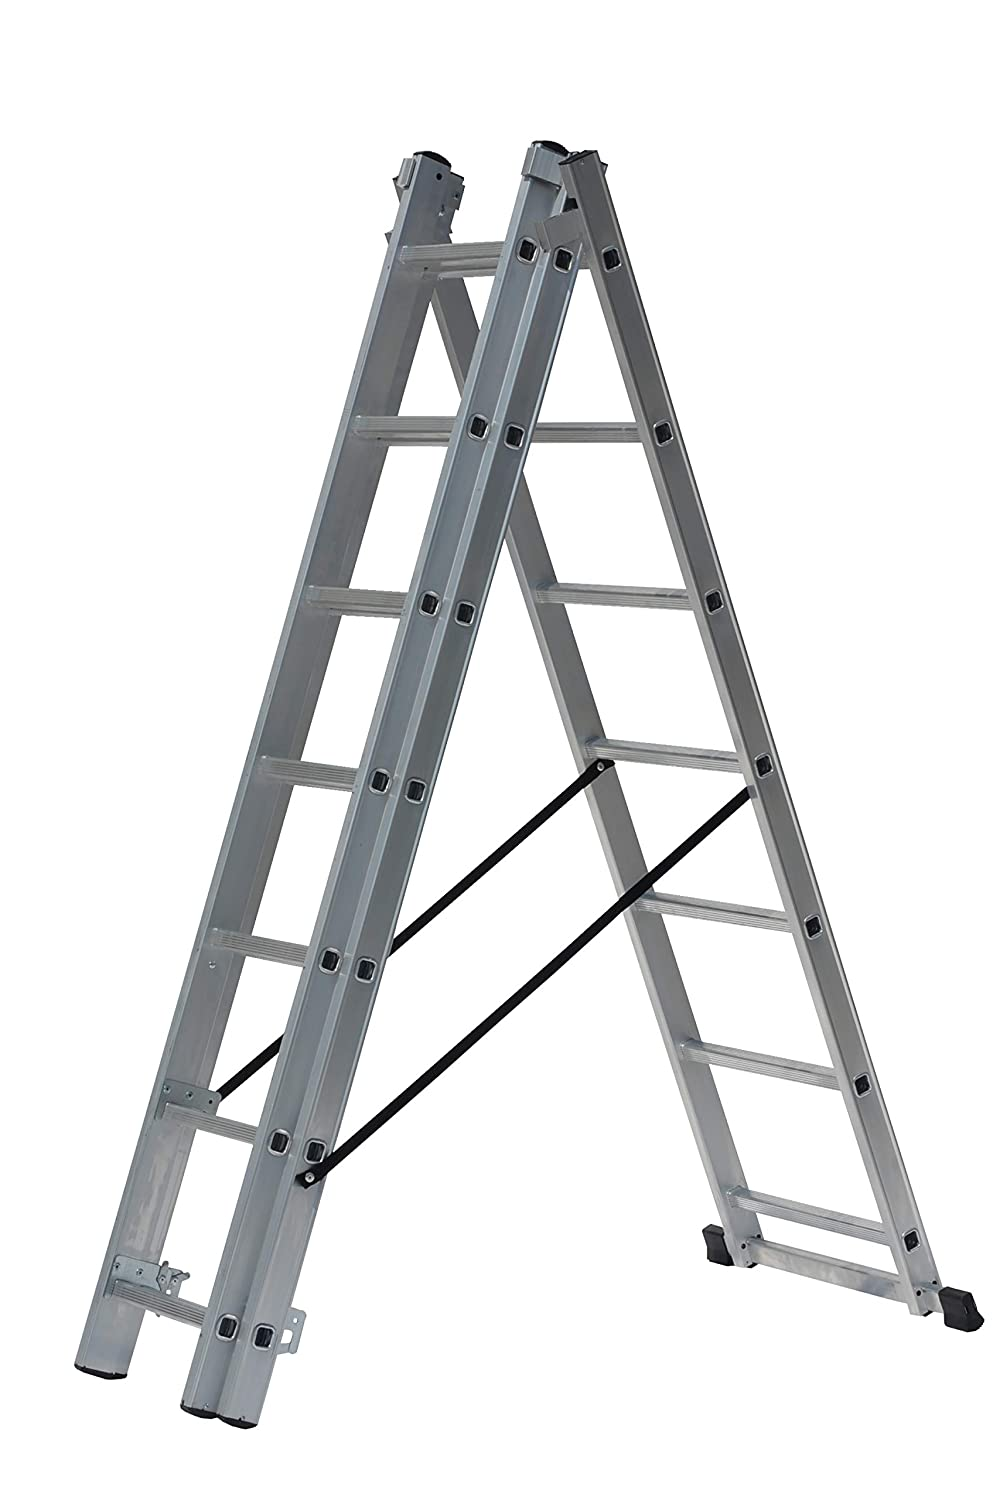 Drabest DW33X7 4 in 1 Aluminium Combination Reform Ladder 4m DP-3X7